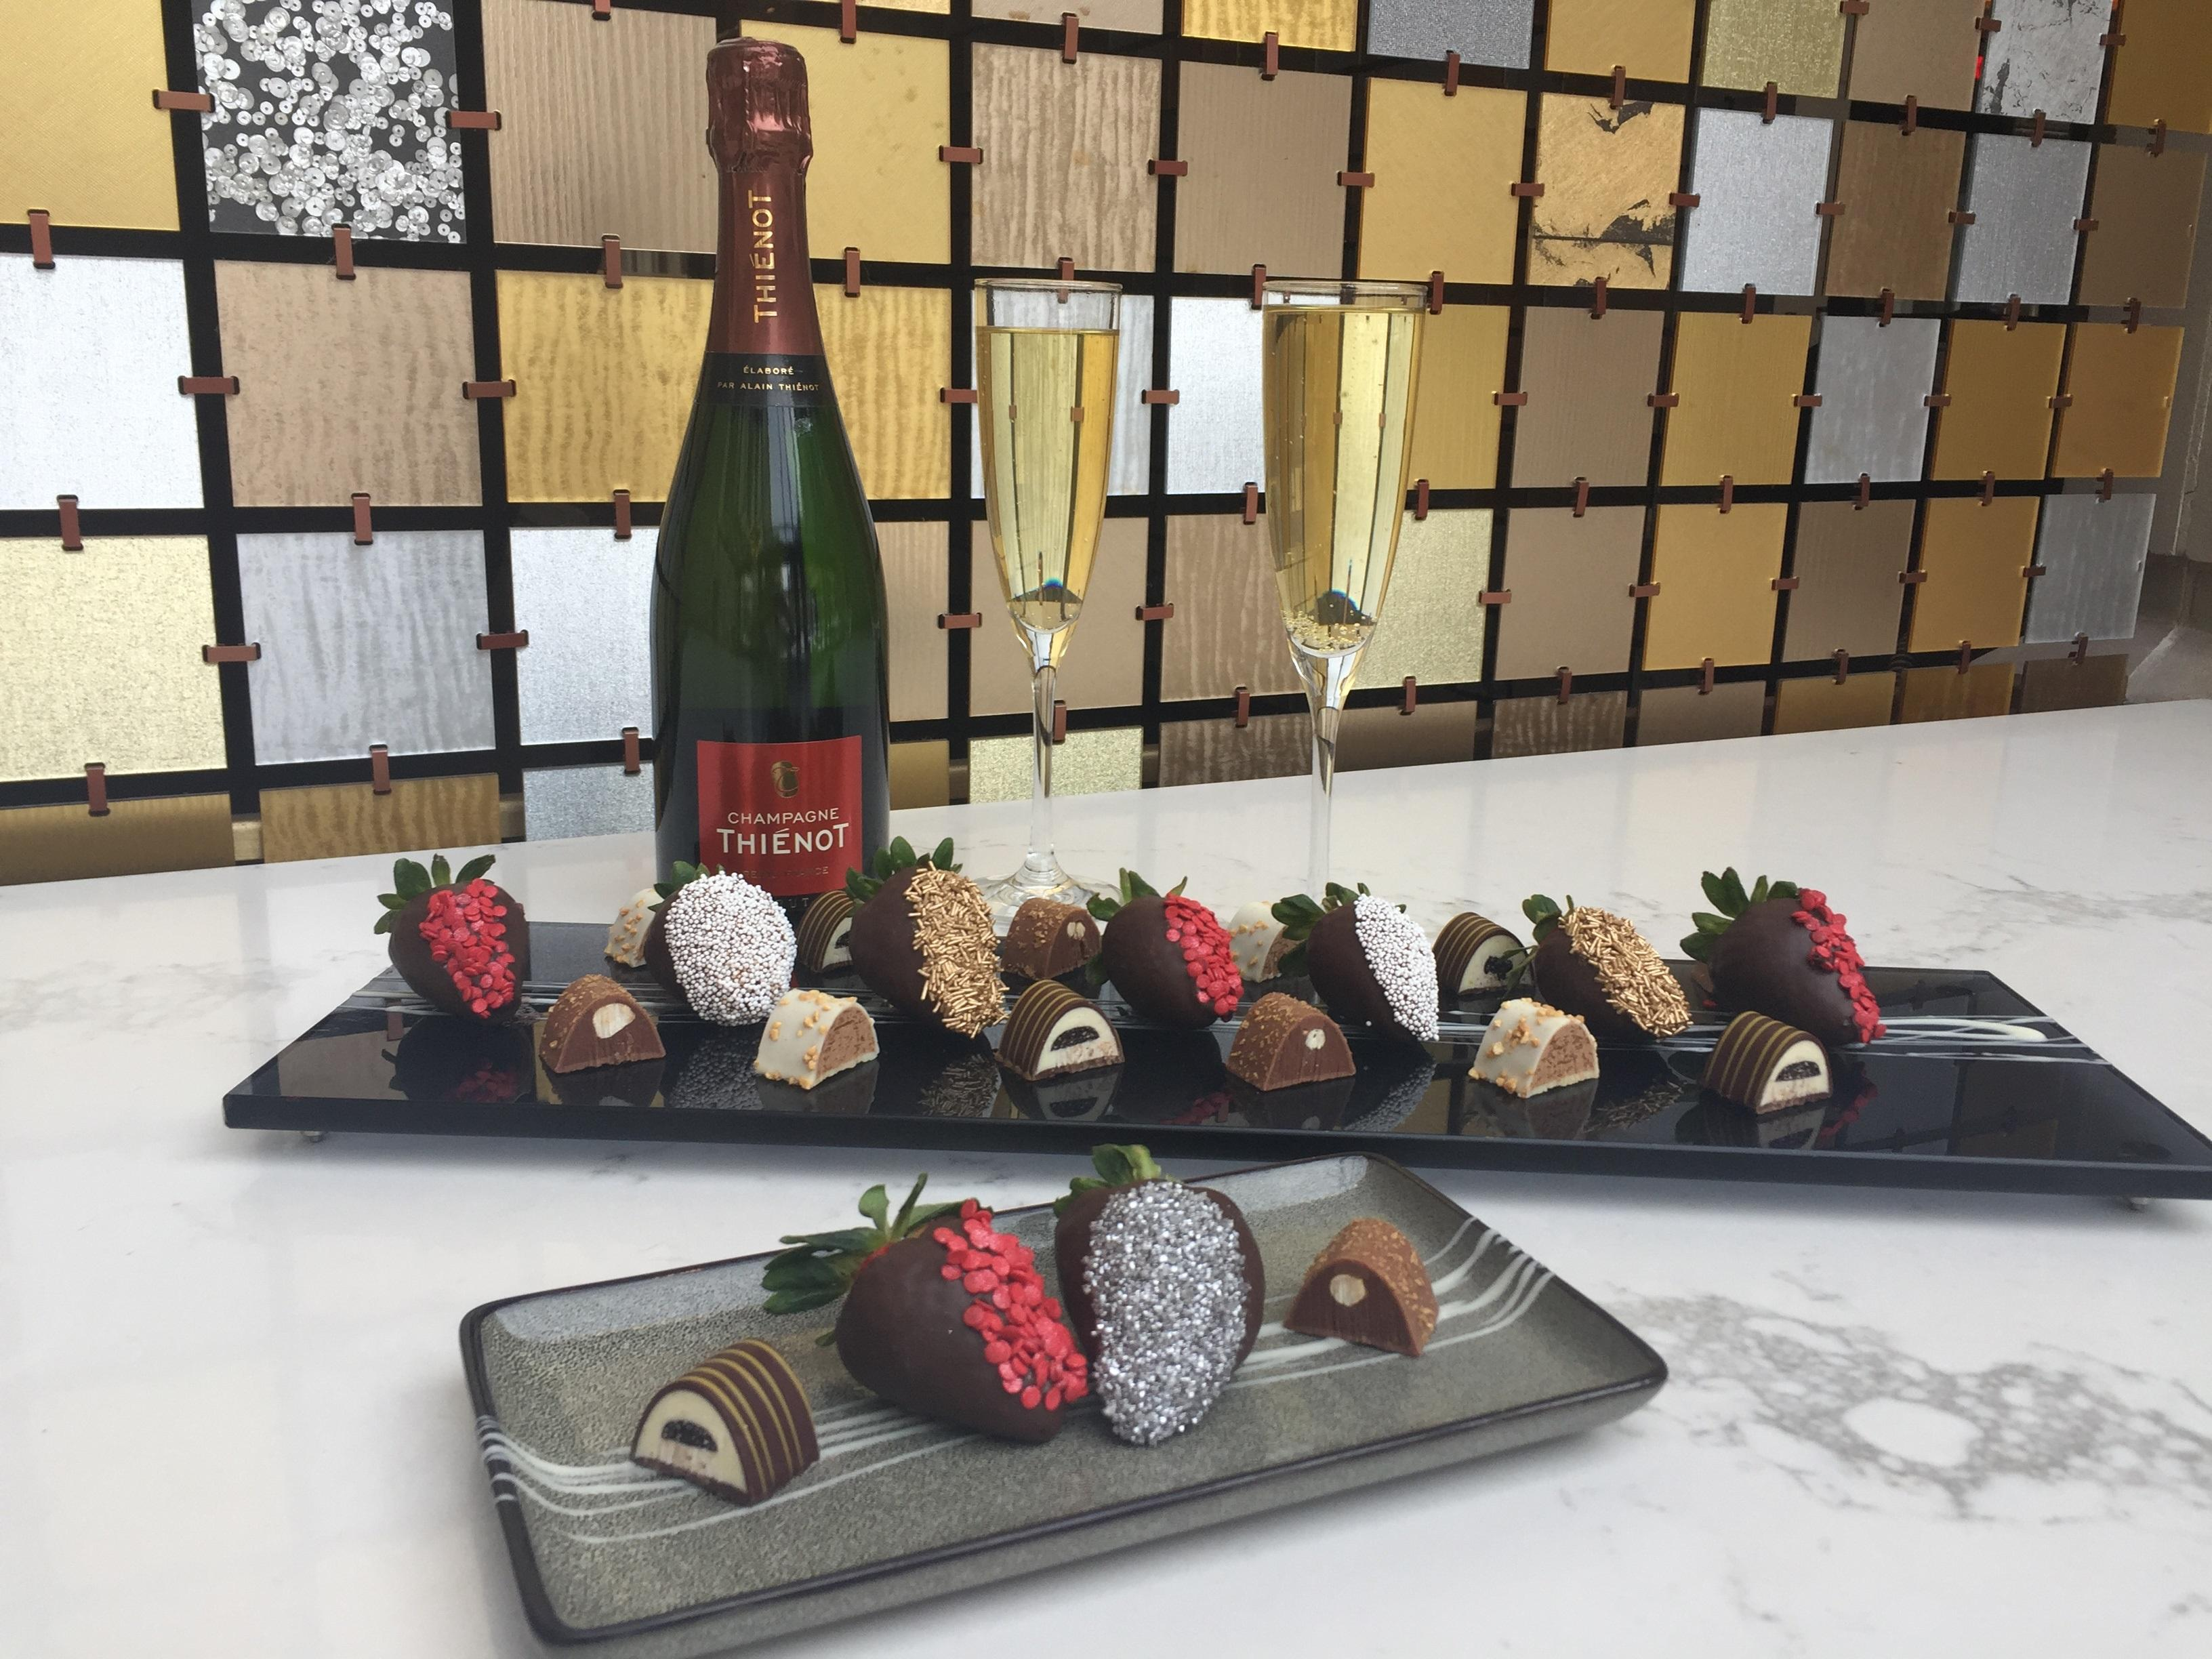 Celebrate Valentine's Day from Monday, February 11th through Sunday, February 17 with Champagne, chocolate truffles, and chocolate covered strawberries at the Fairmont in Georgetown.{ } (Image: Courtesy Fairmont Hotel)